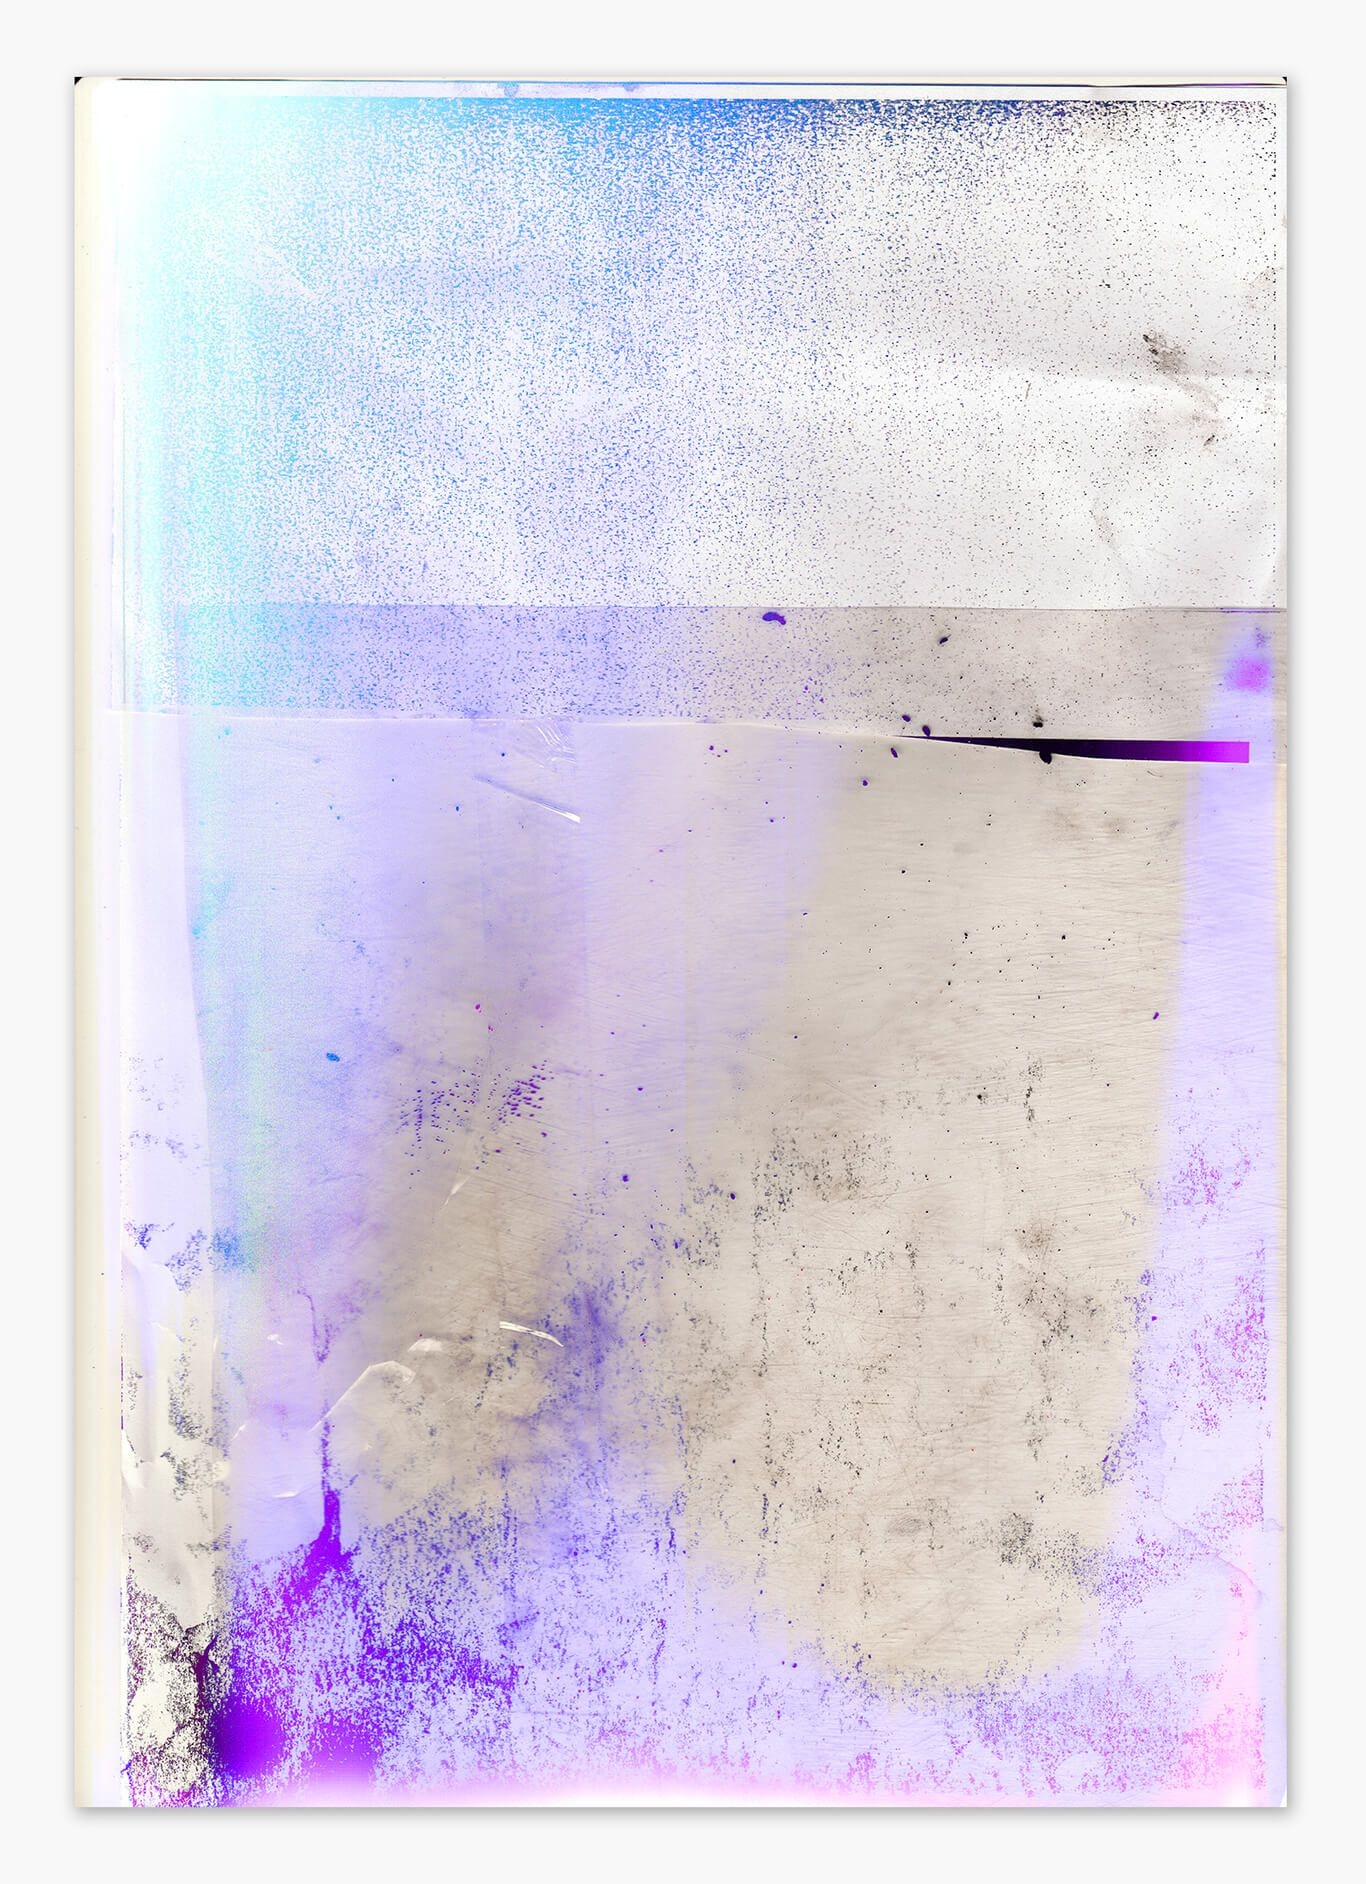 Paul Kneale, Post-post-post production. Perfect Hardcore Documentation, 2015 Digital print on canvas  152.4 x 107 cm / 60